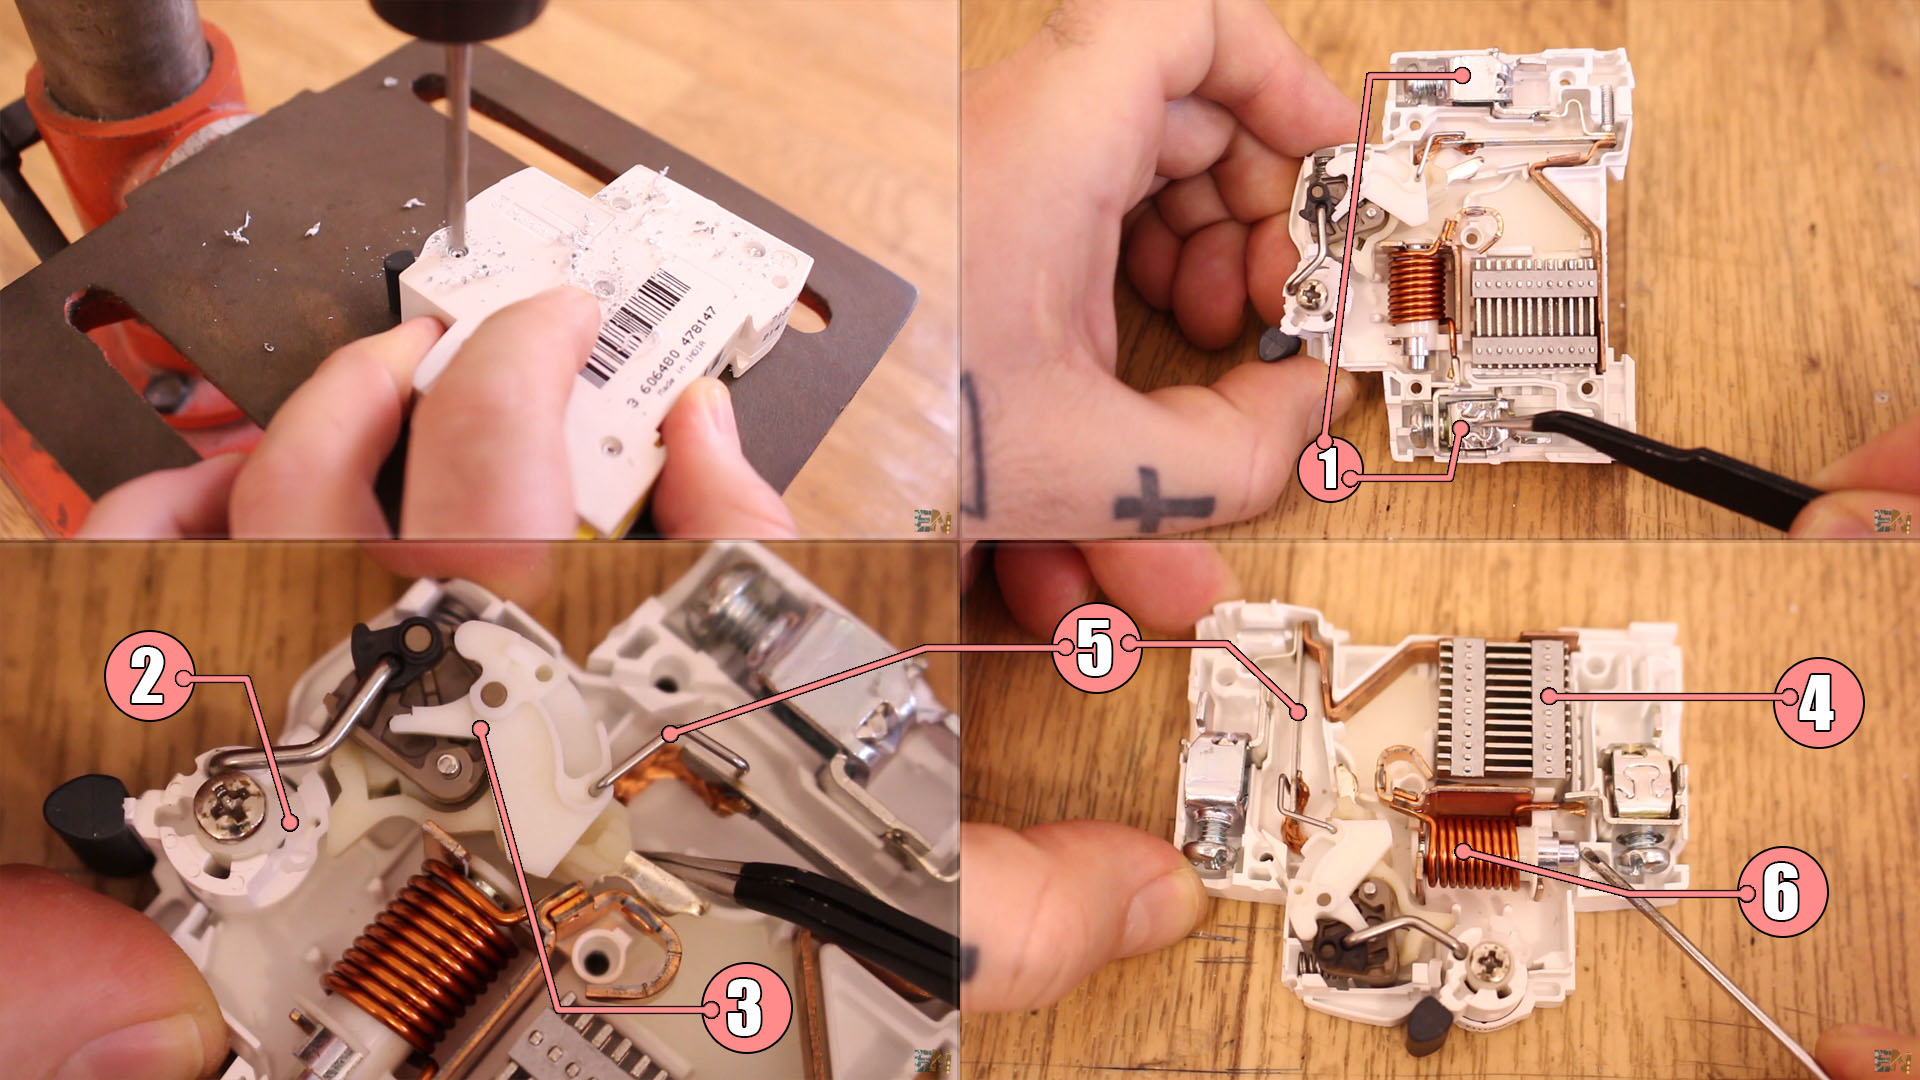 what is inside an MCB miniature circuit breaker?